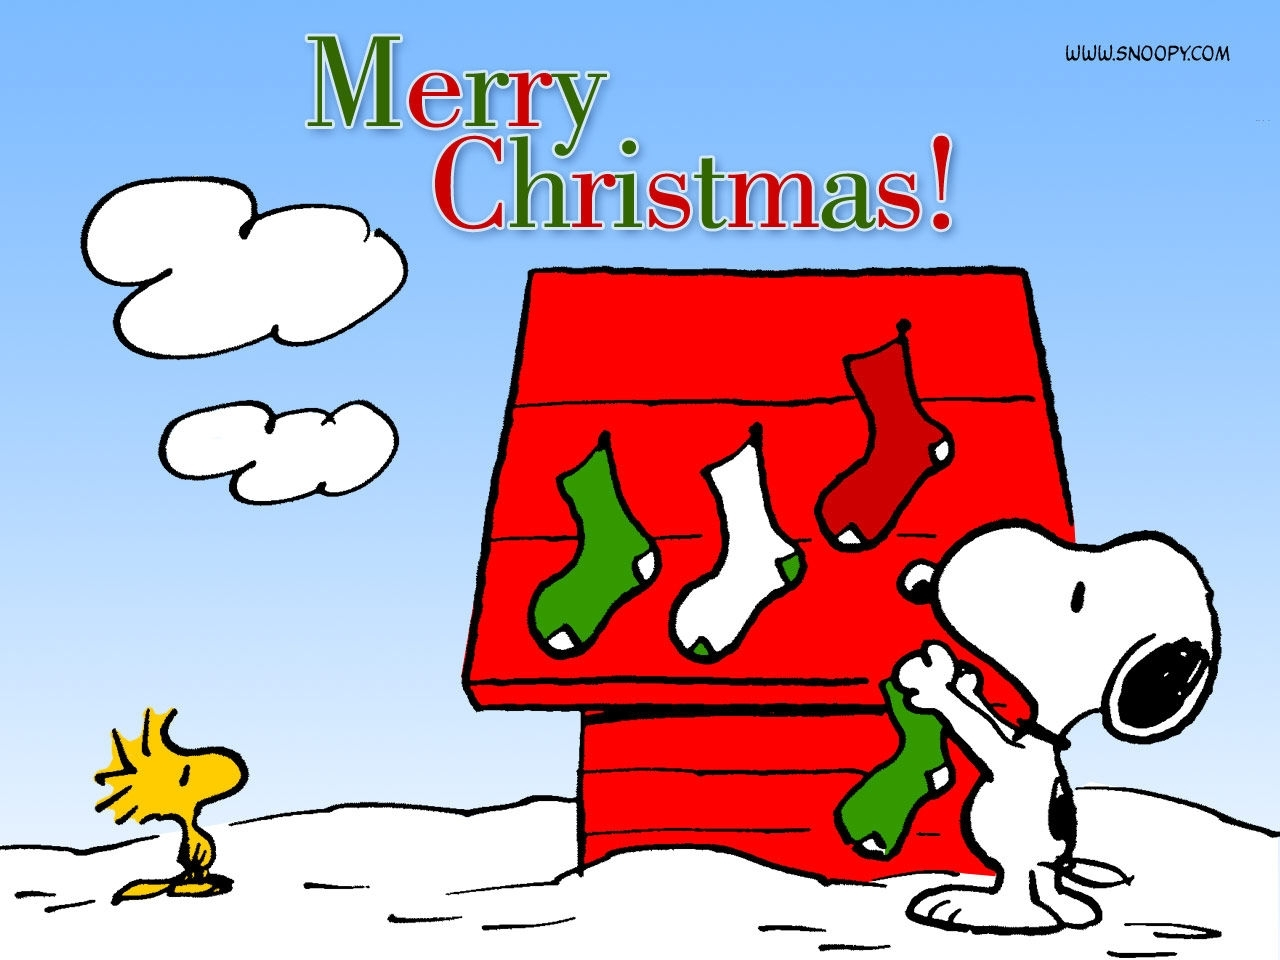 snoopy merry christmas image quote pictures, photos, and images for